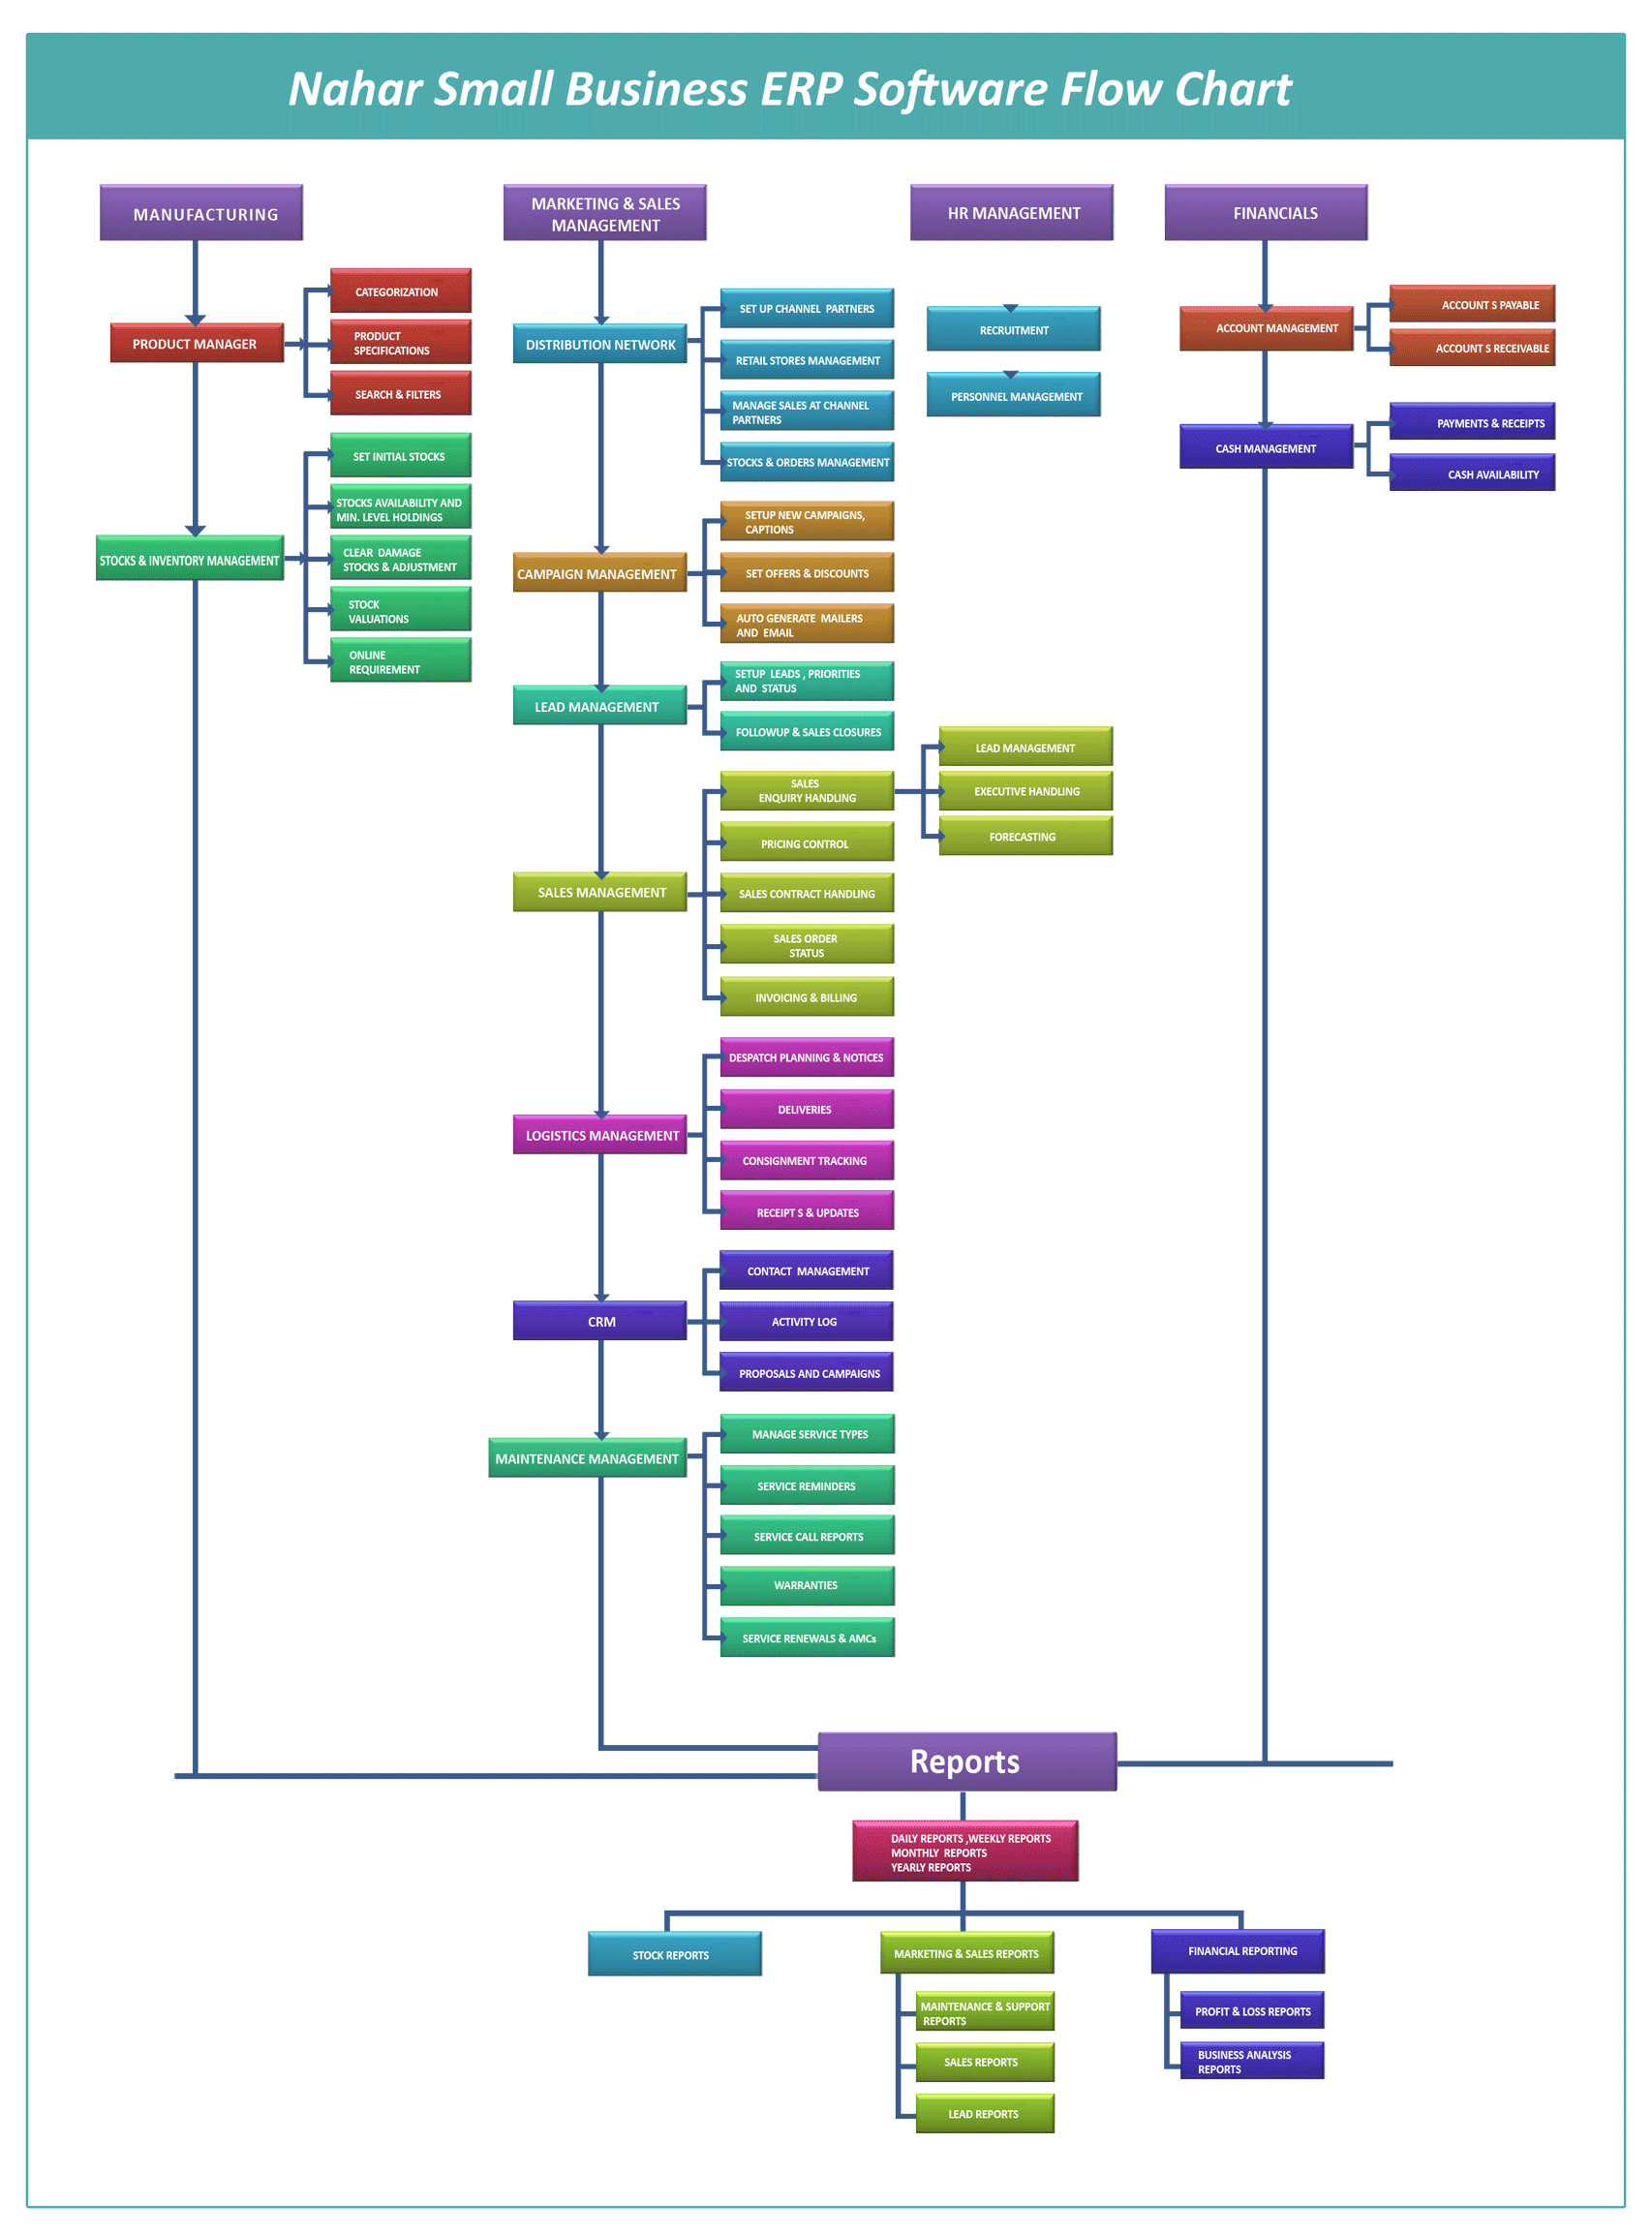 Nahar technologies p ltd small business erp software suite erp flow chart nvjuhfo Images